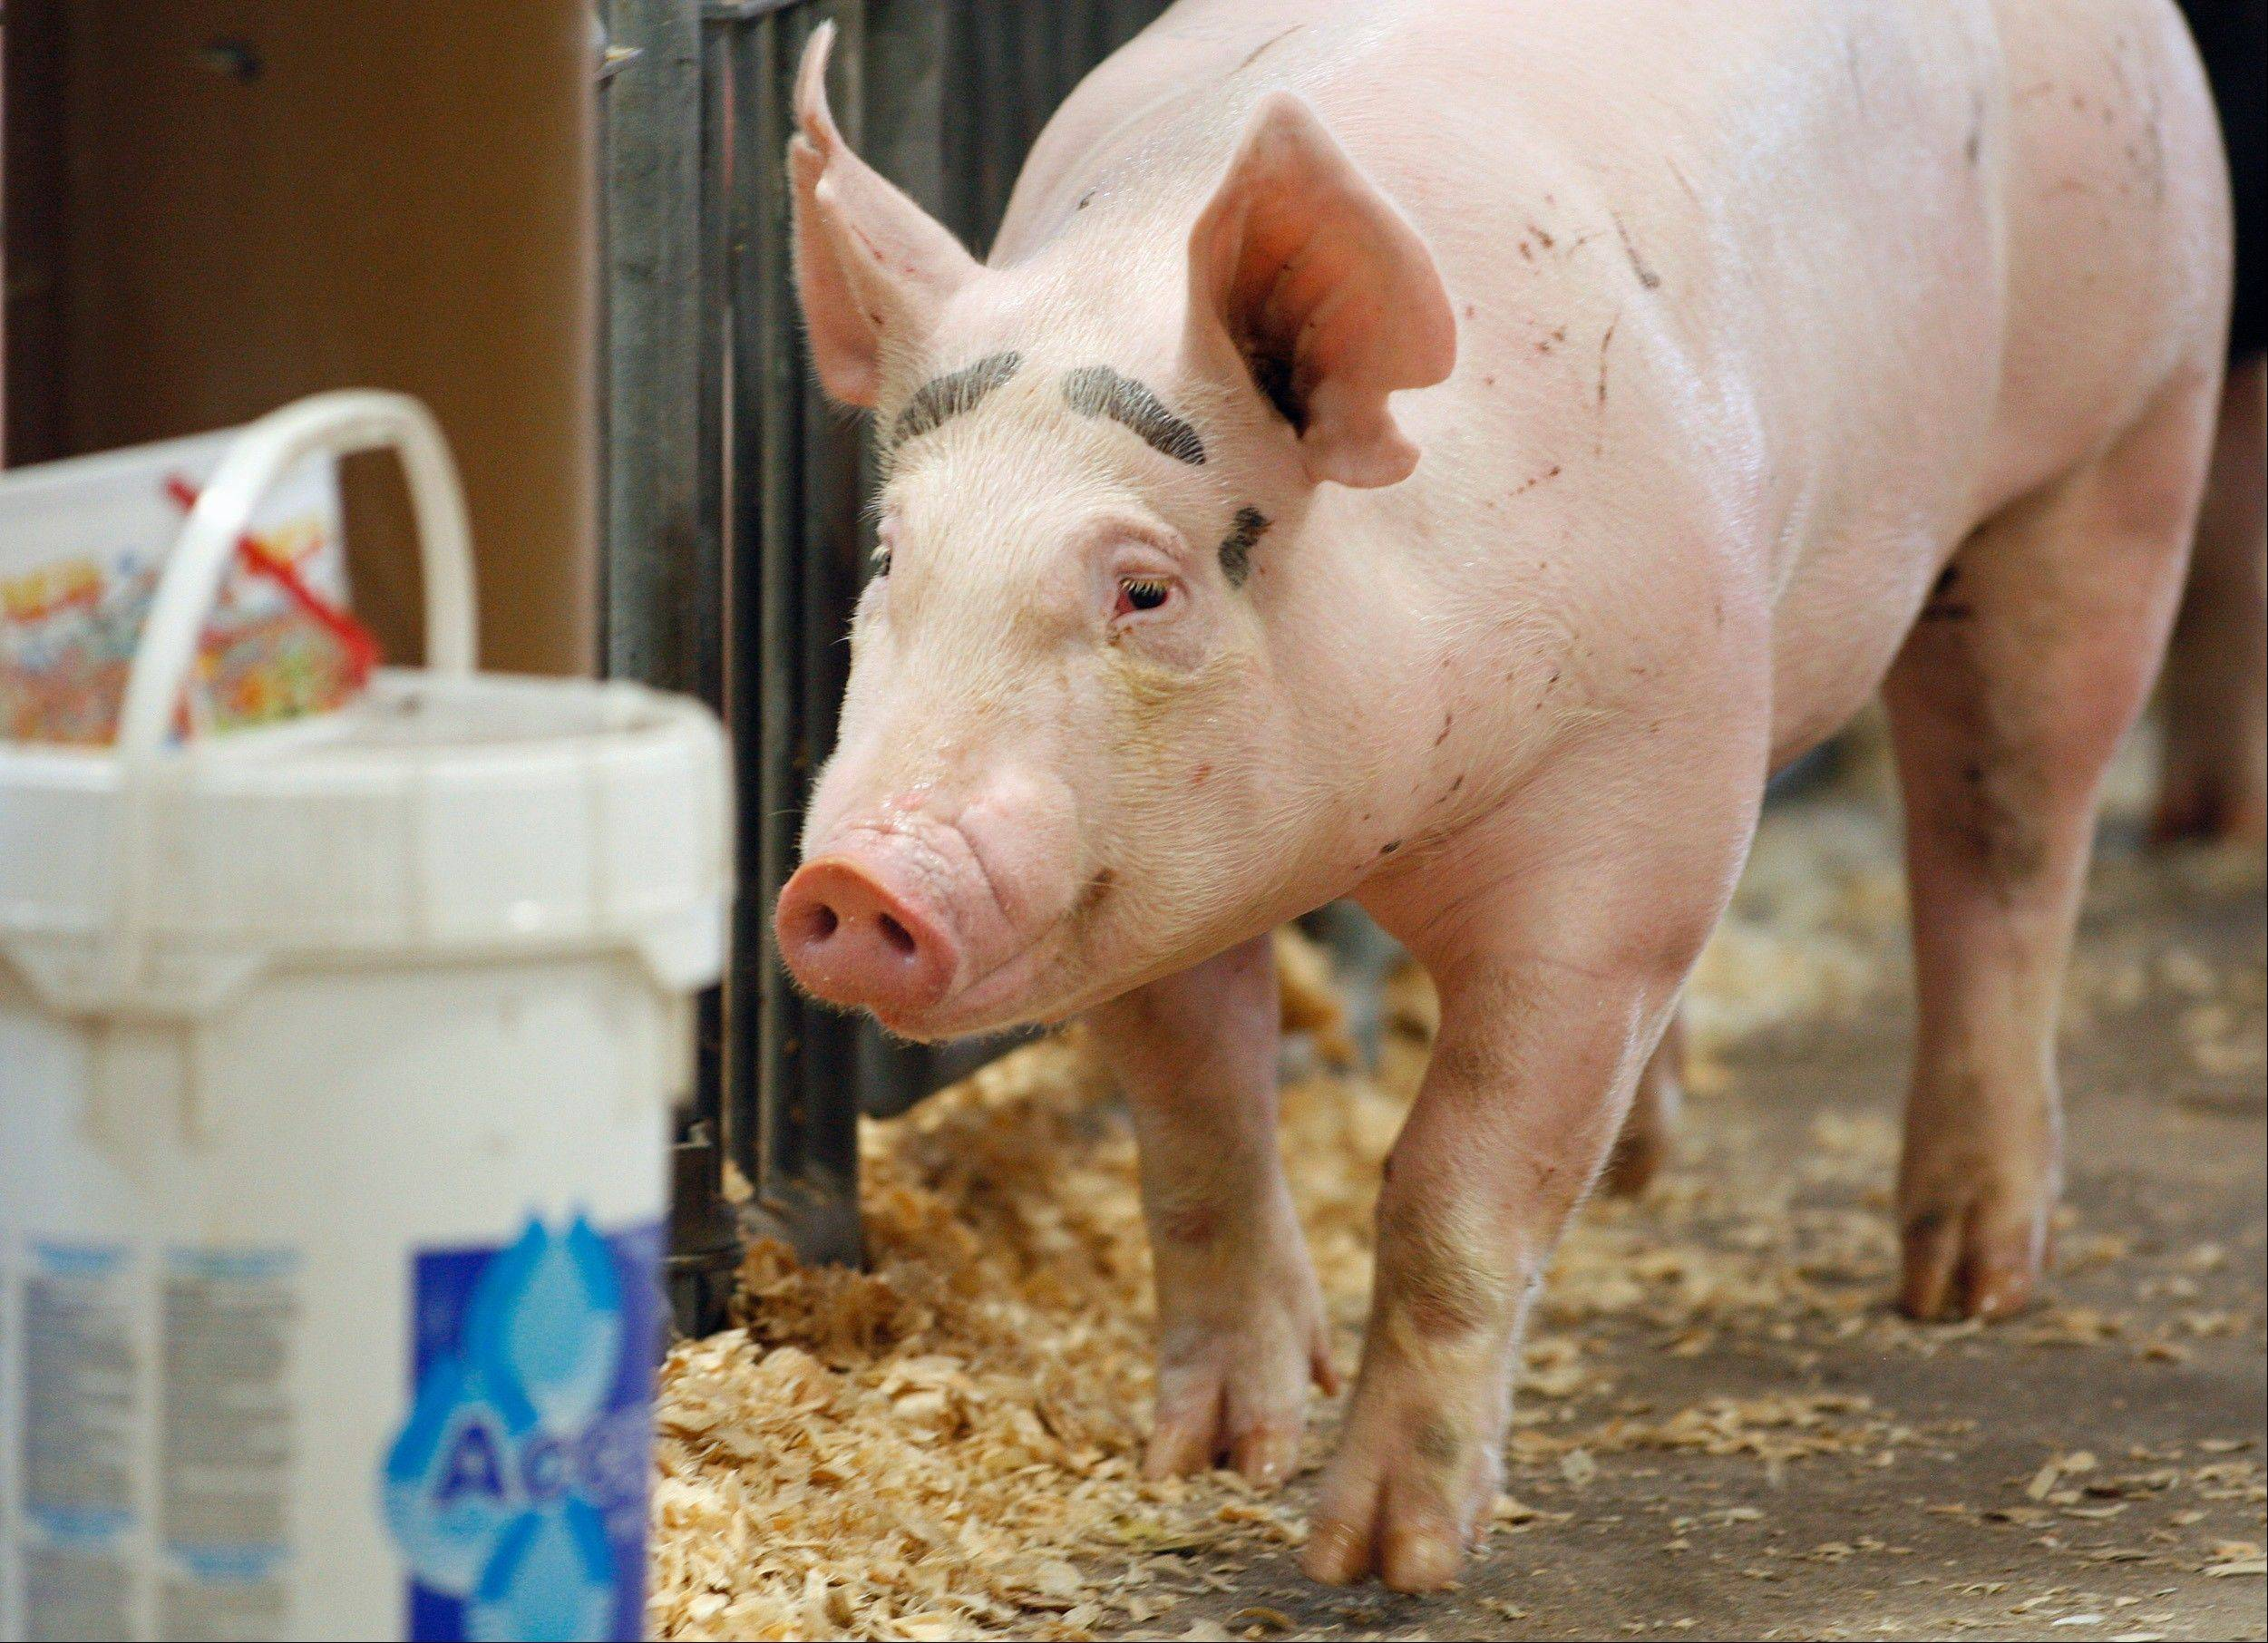 The Centers for Disease Control and Prevention said Thursday there's been a five-fold increase of cases of a new strain of swine flu that spreads from pigs to people.